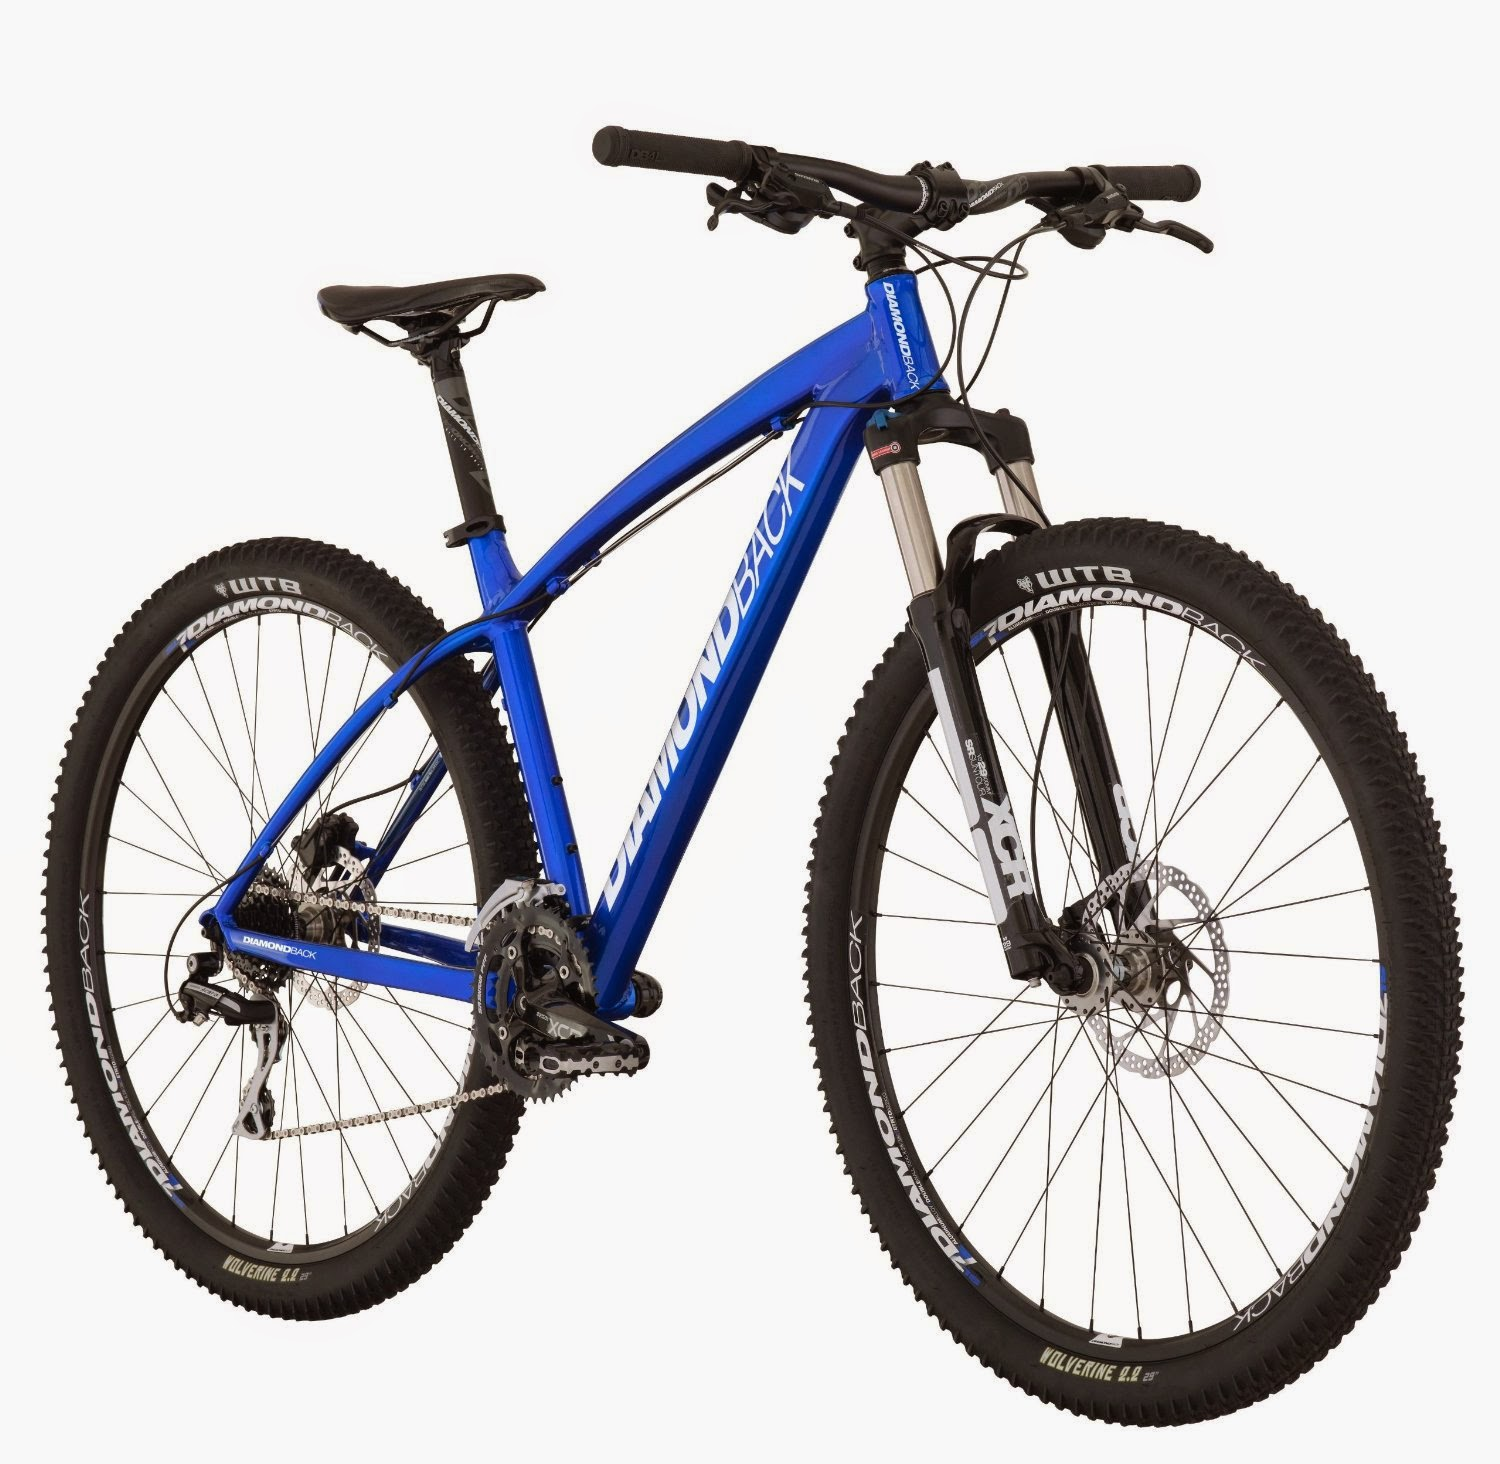 Diamondback 2014 Overdrive Sport Mountain Bike 29er, picture, review features & specifications